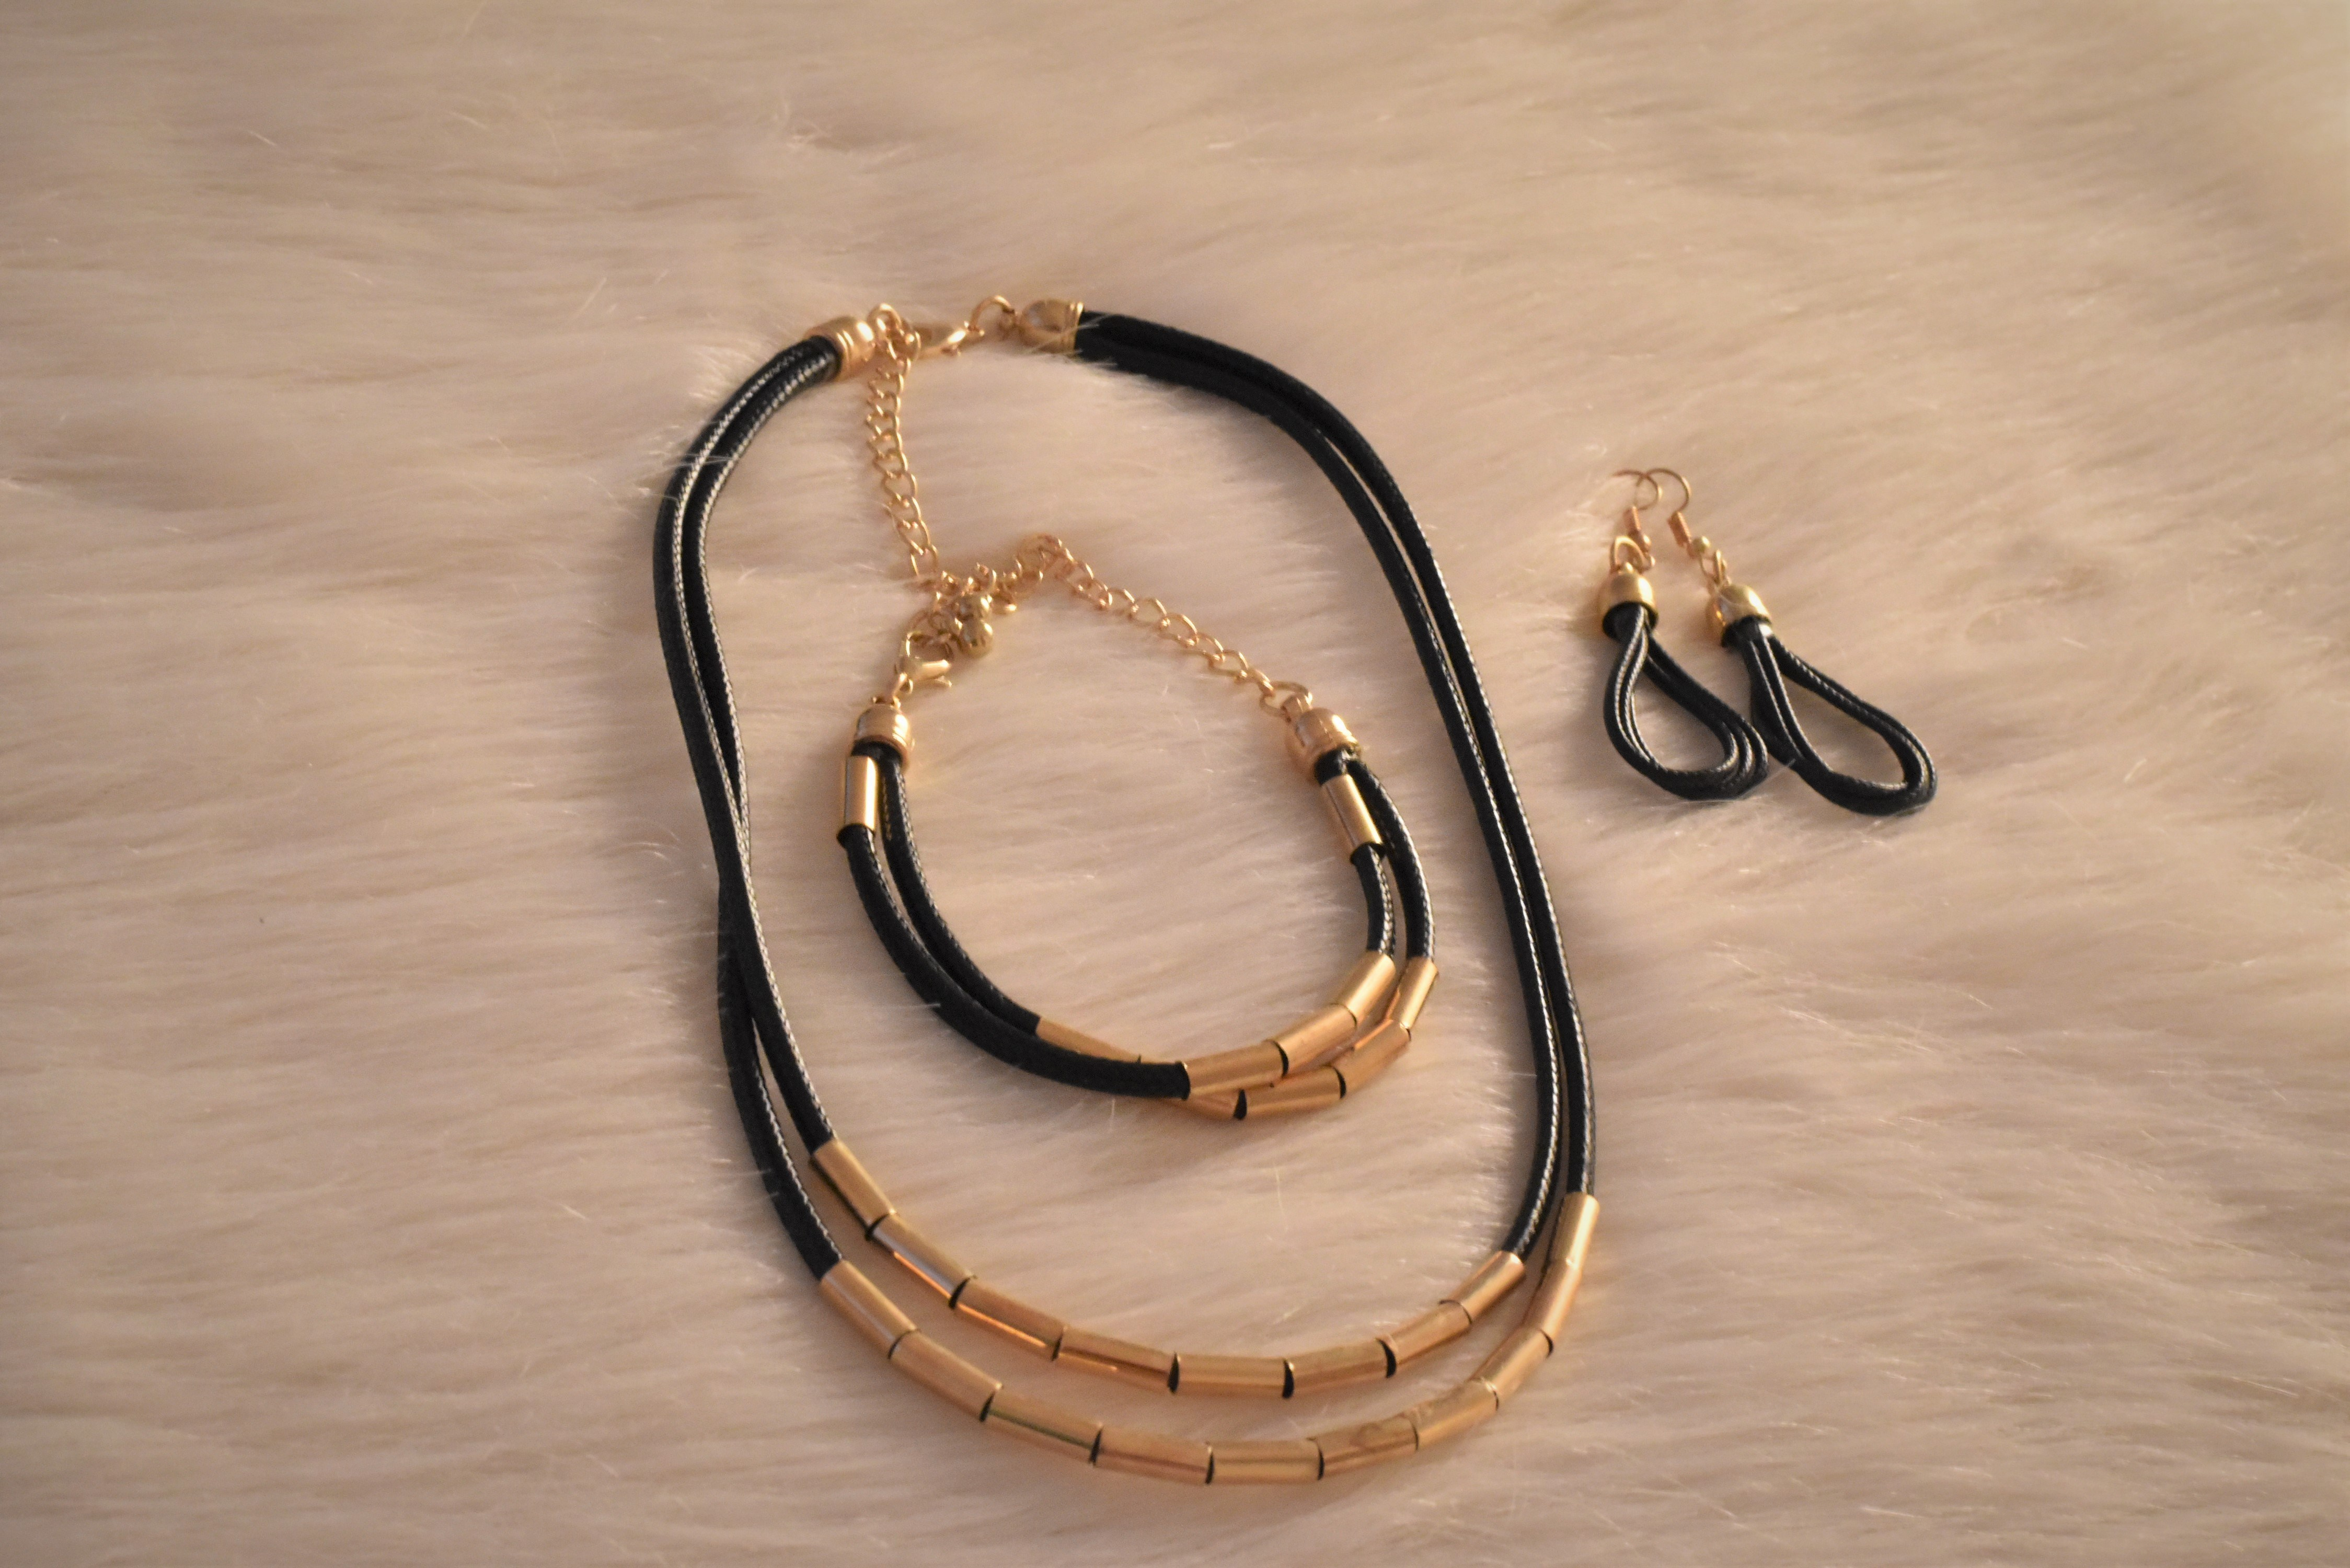 Beaded Layered Necklace with matching Ear Rings & Bracelet from Grab Your Garb